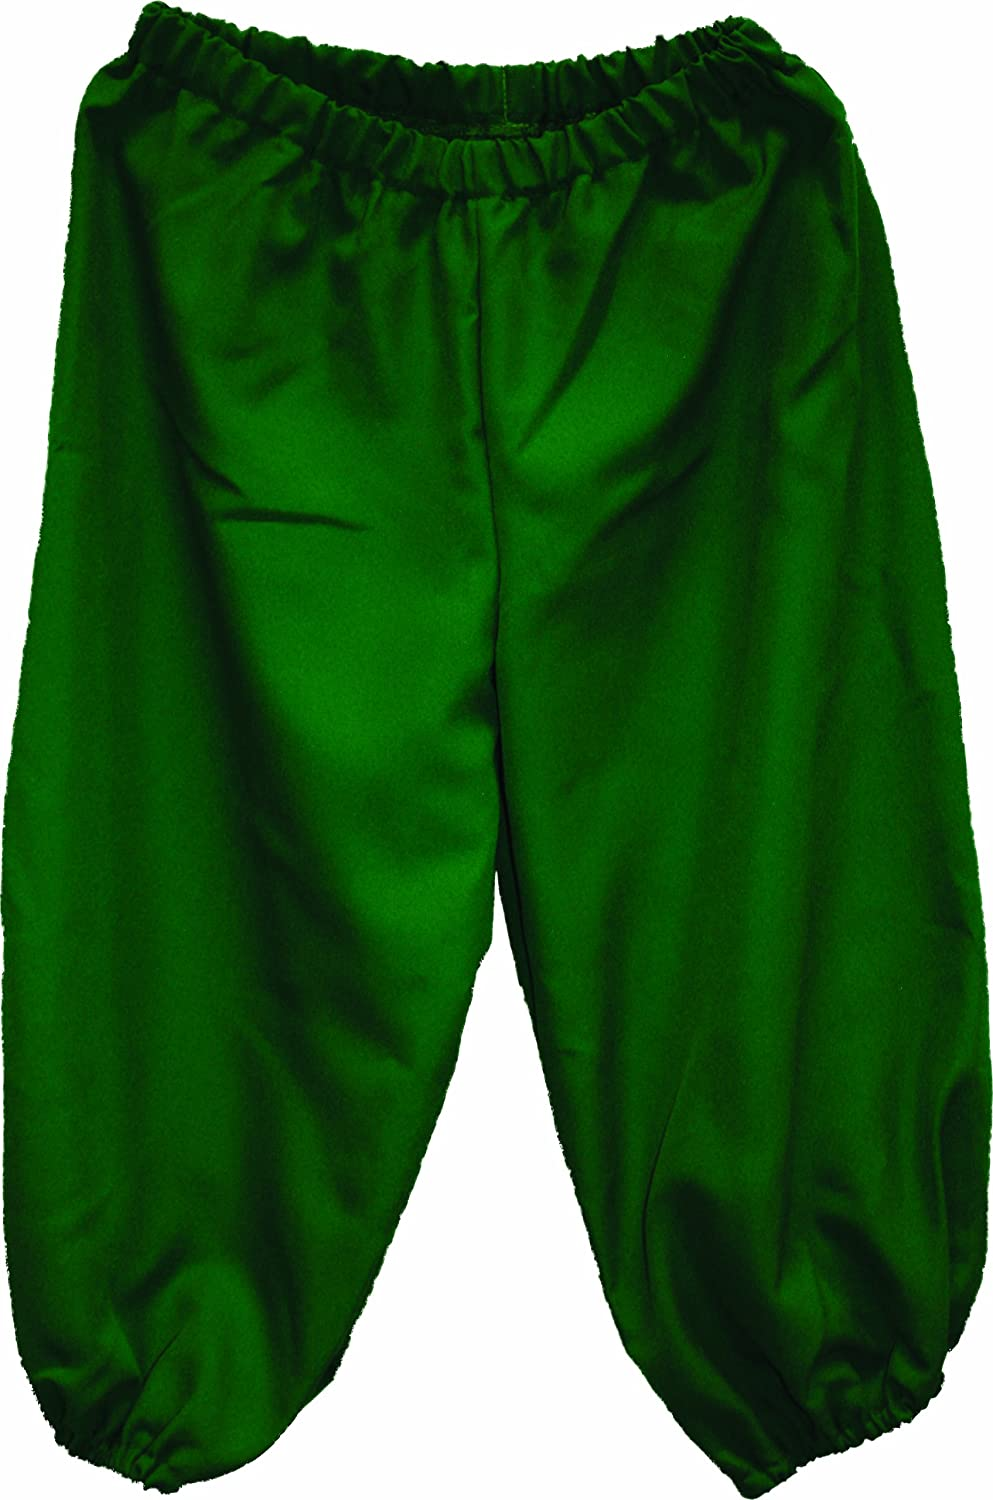 Deluxe Adult Costumes - Men's green pirate knickers, pirate breeches, pirate pants, pirate trousers by Alexanders Costumes